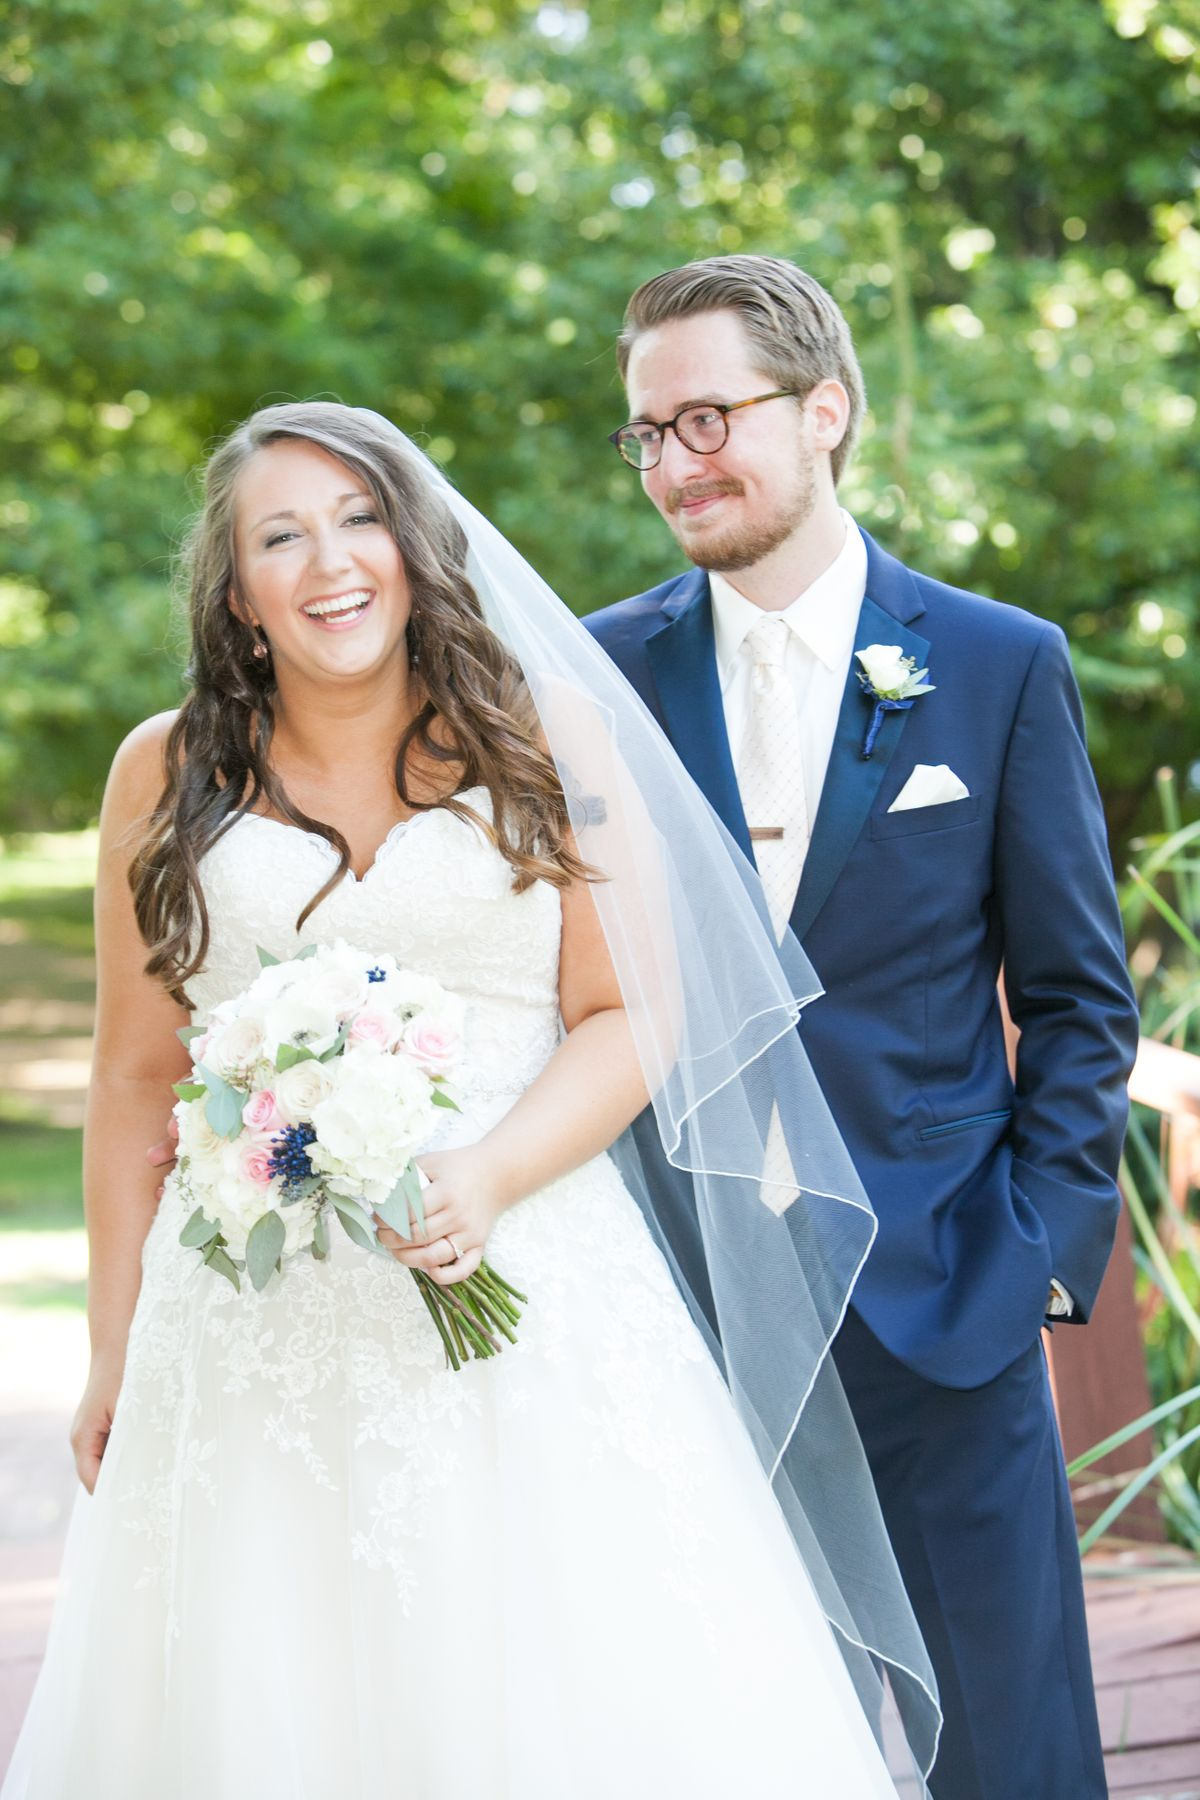 Bride with Groom and bouquet